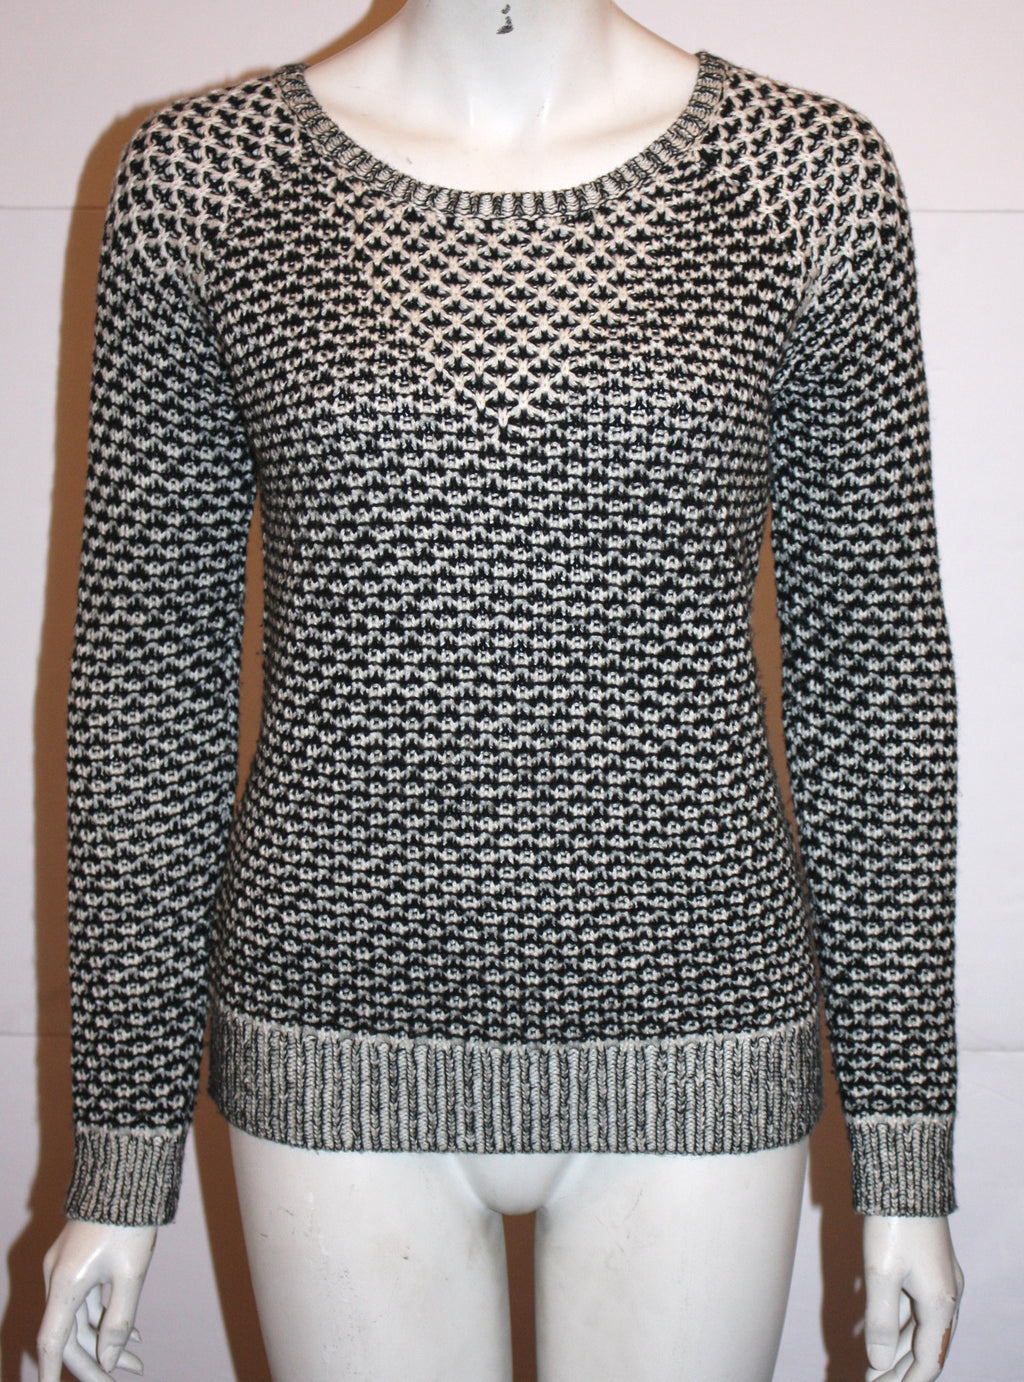 Anthropologie Sparrow Black & Grey Round Neck Knit Sweater - Joyce's Closet  - 1